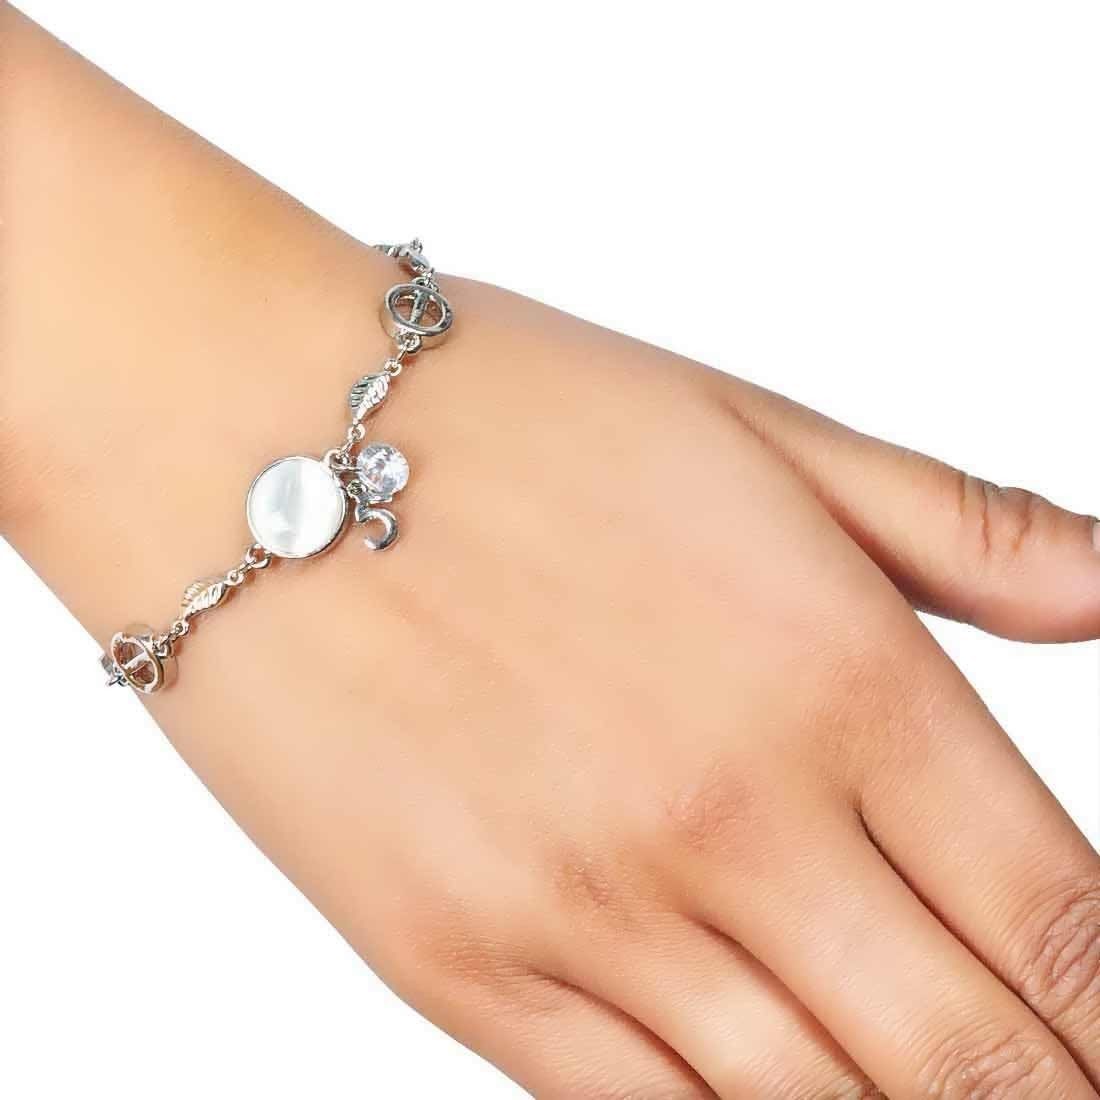 Modern Silver Contemporary Adjustable Reunion Size Bracelet Alloy Maayra MY7717